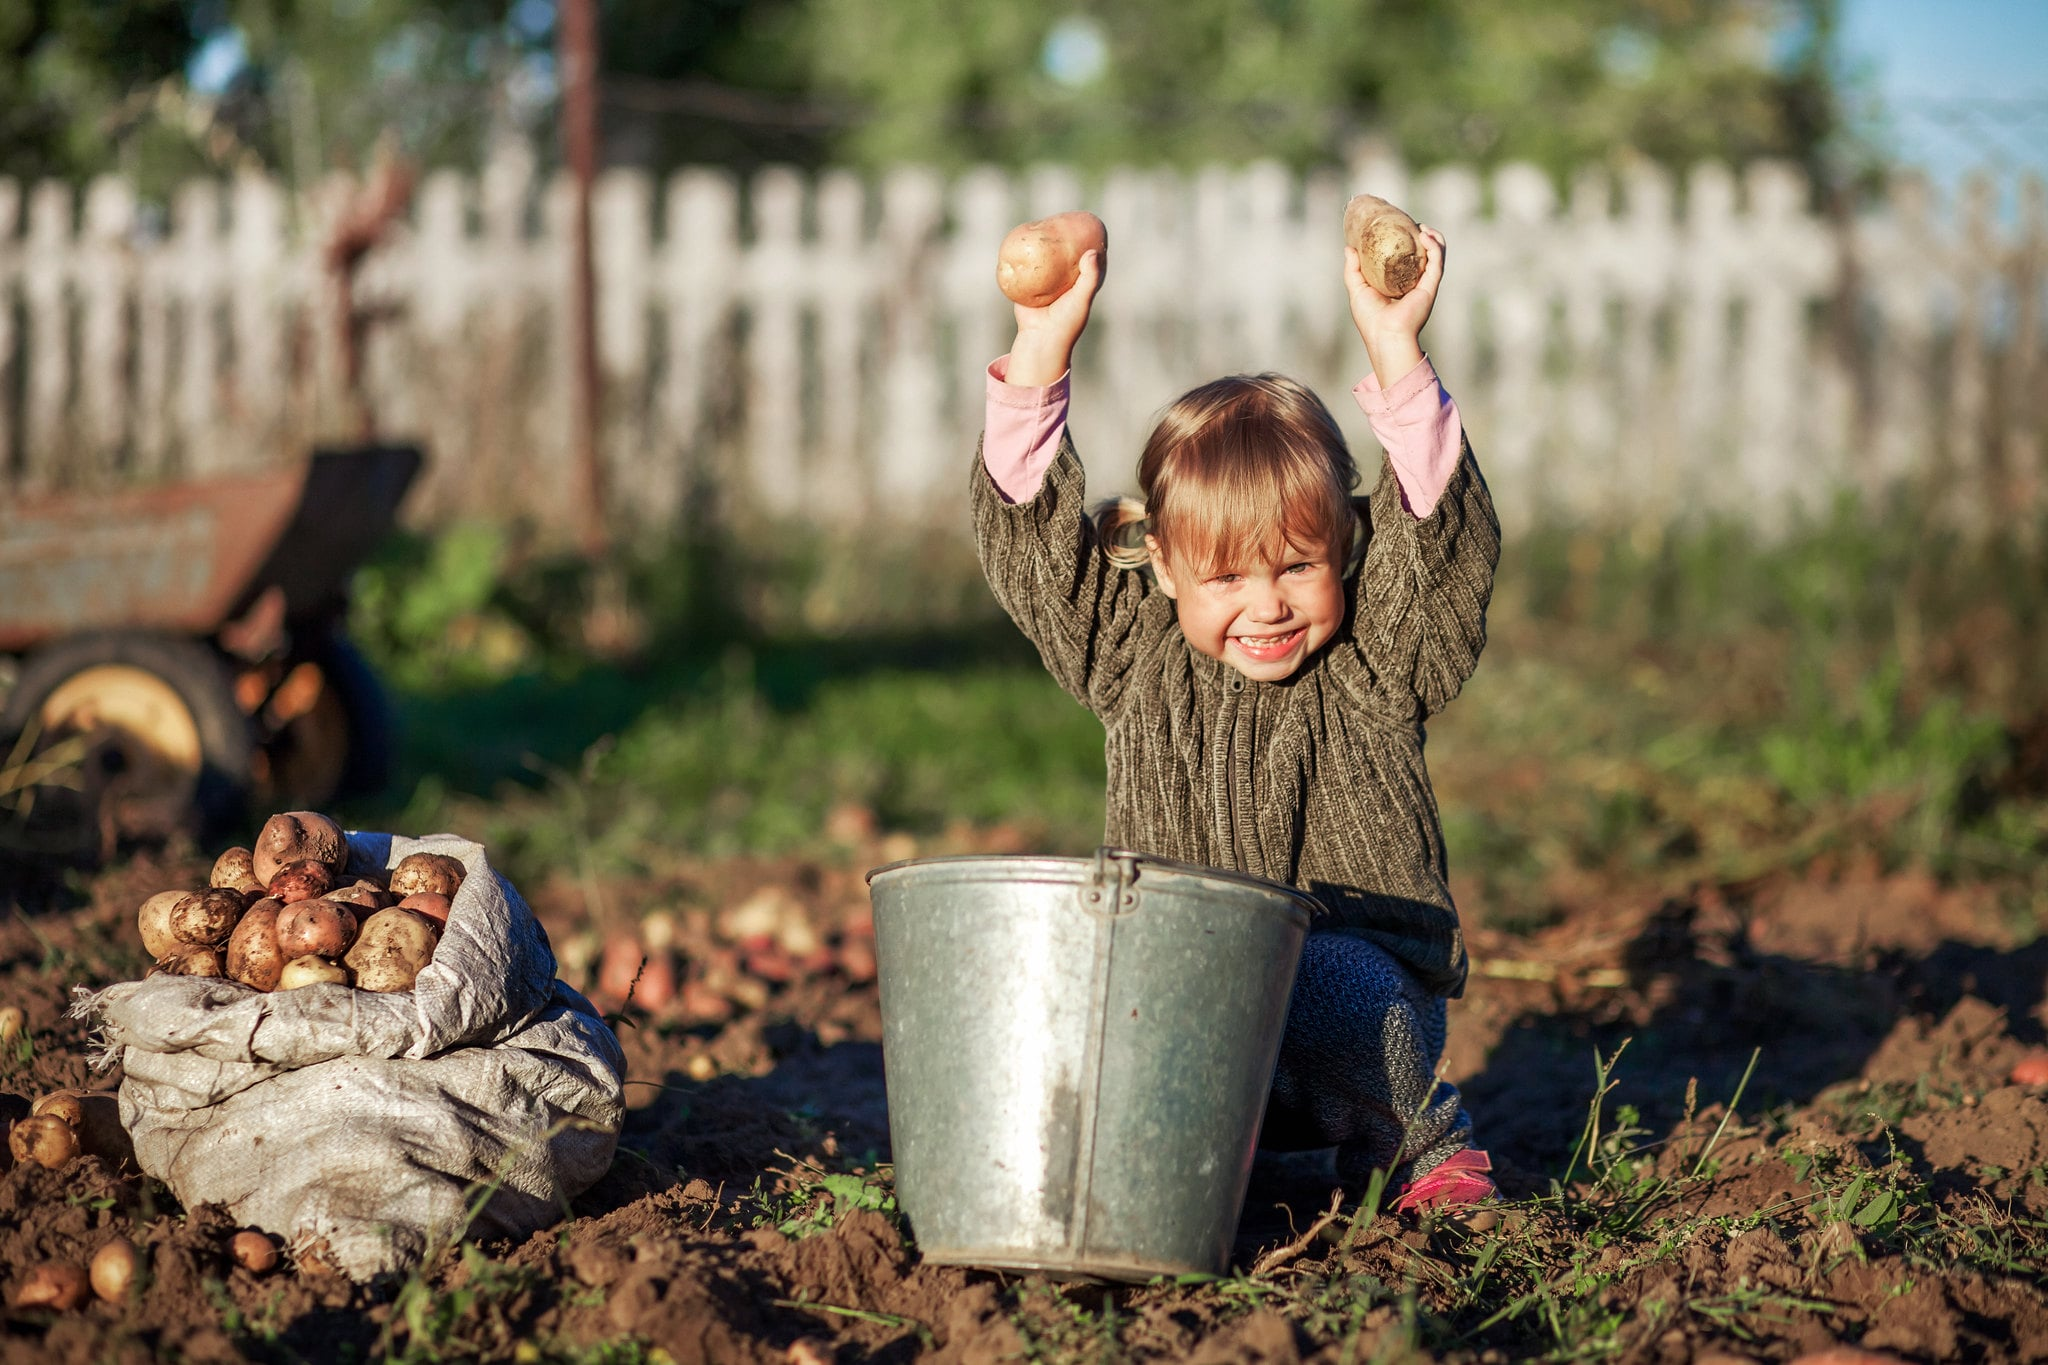 child holding up two potatoes she has picked from the soil